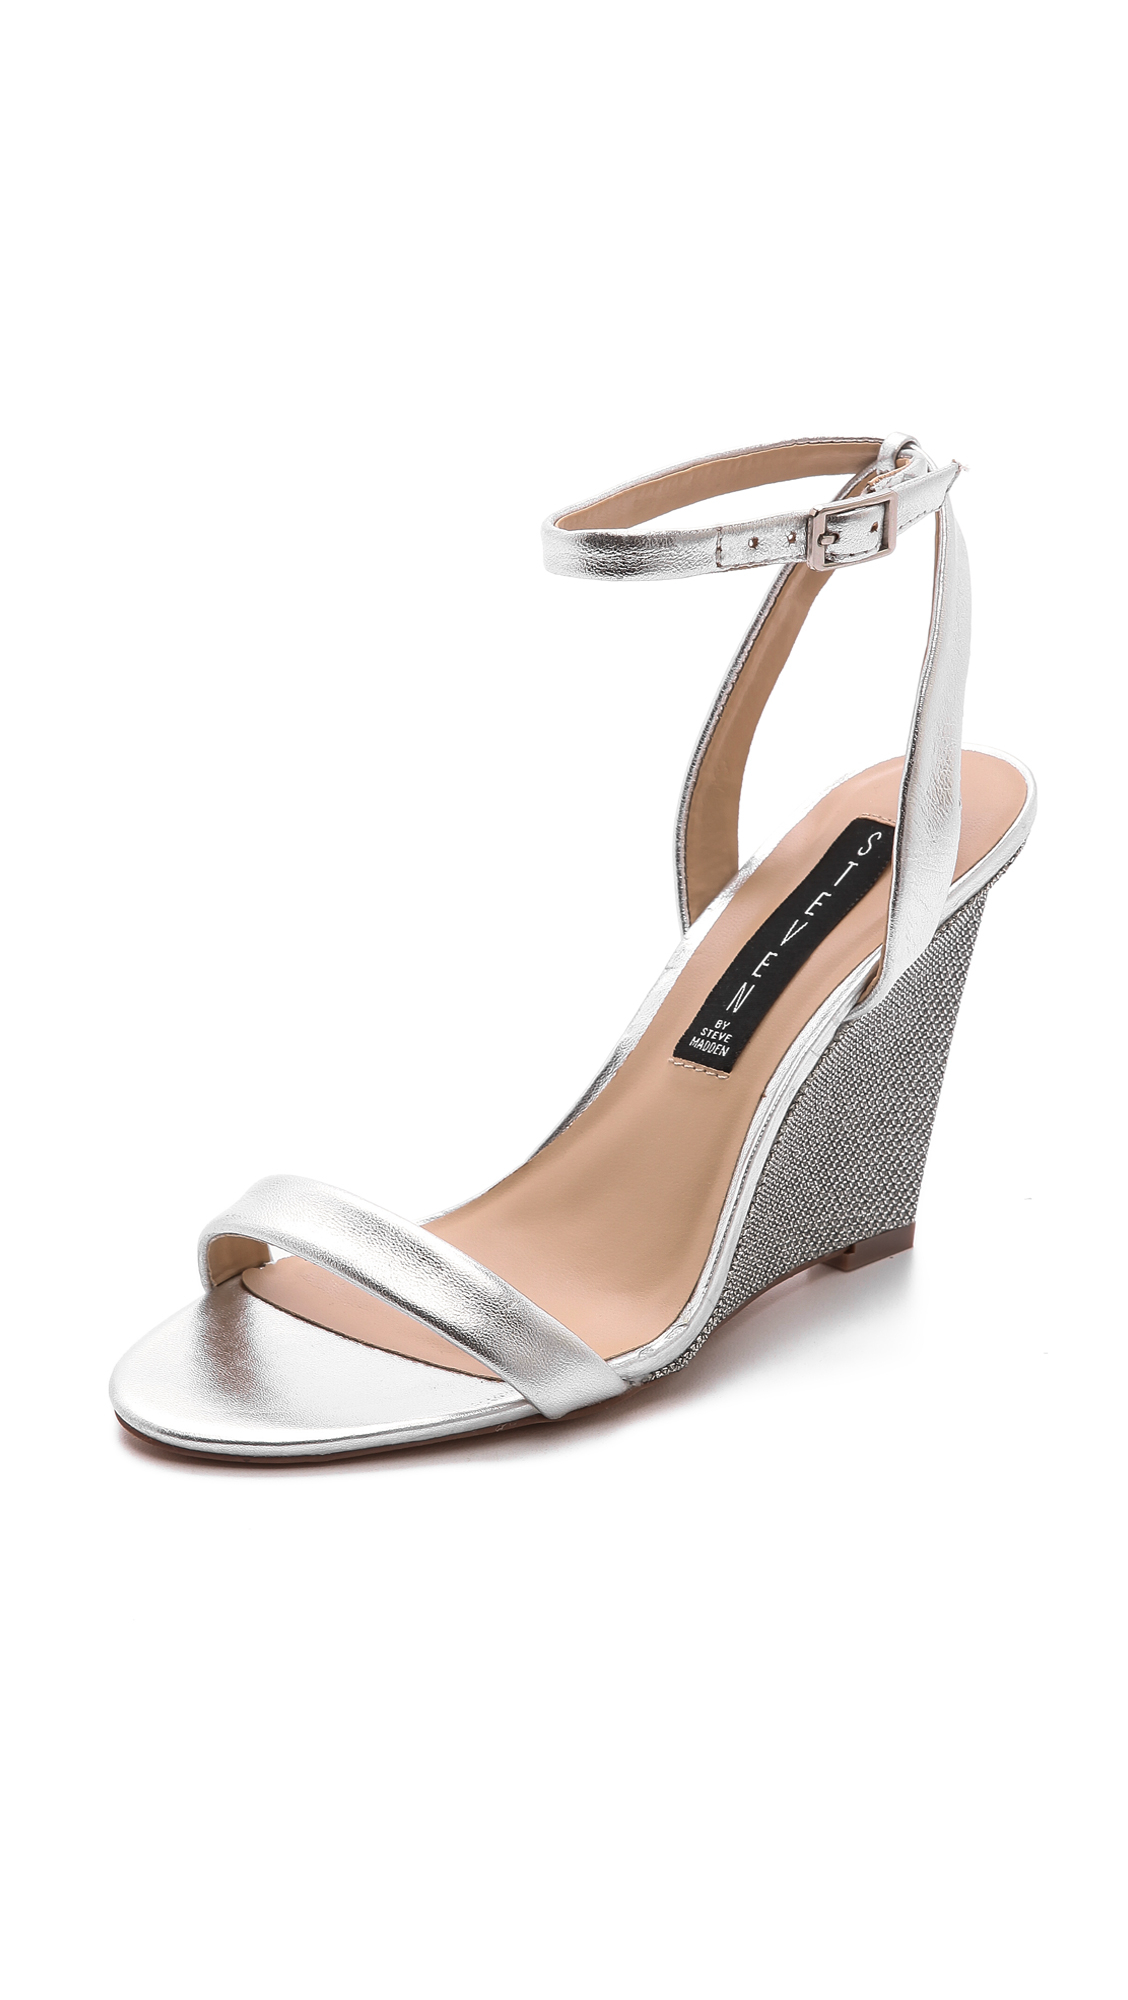 Wedges silver heels photo exclusive photo